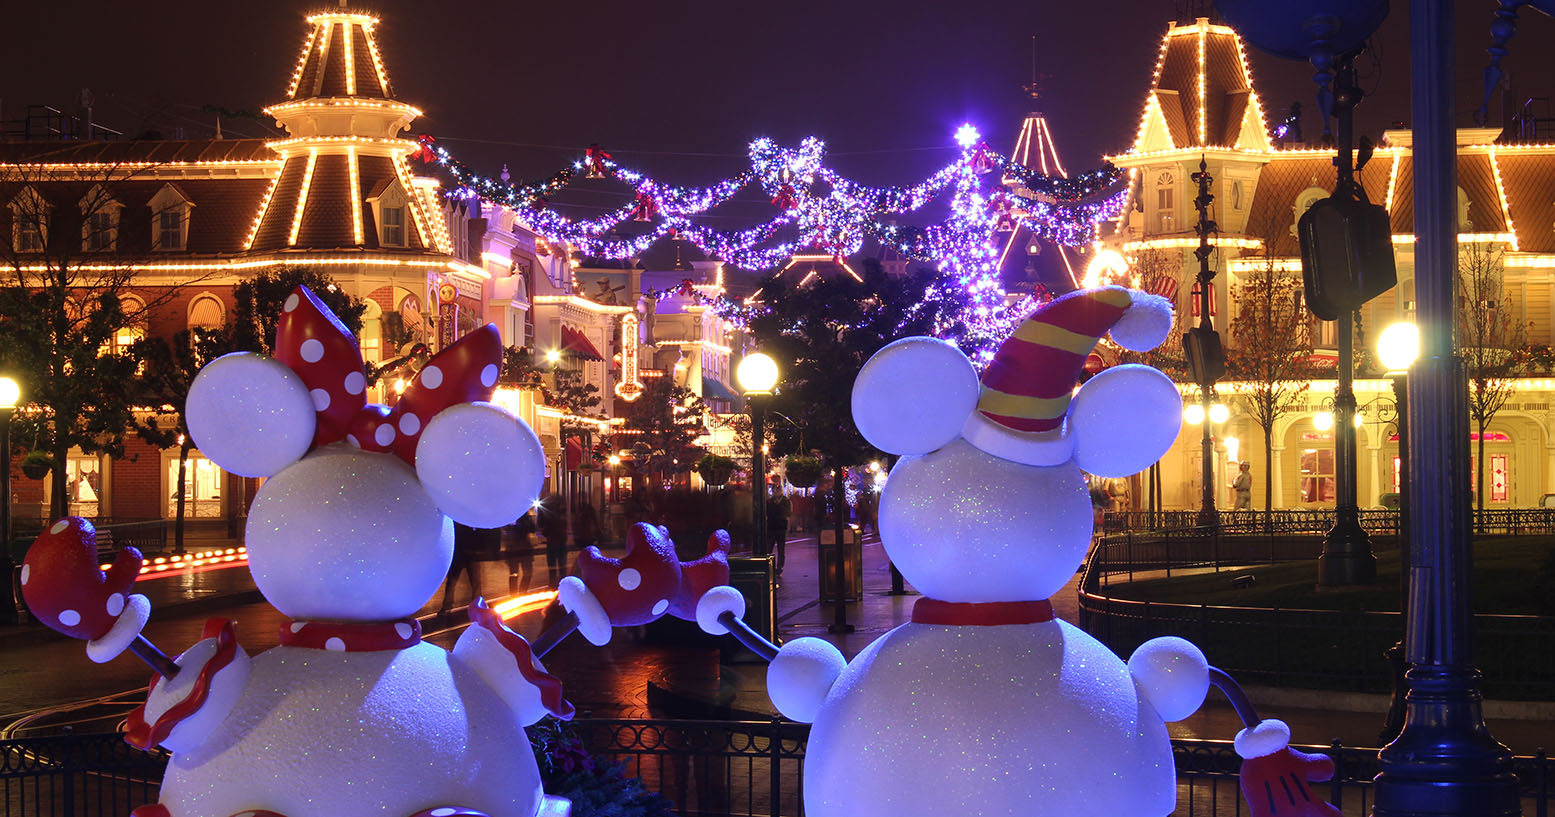 christmas on main street in disneyland paris - When Does Christmas Start At Disneyland